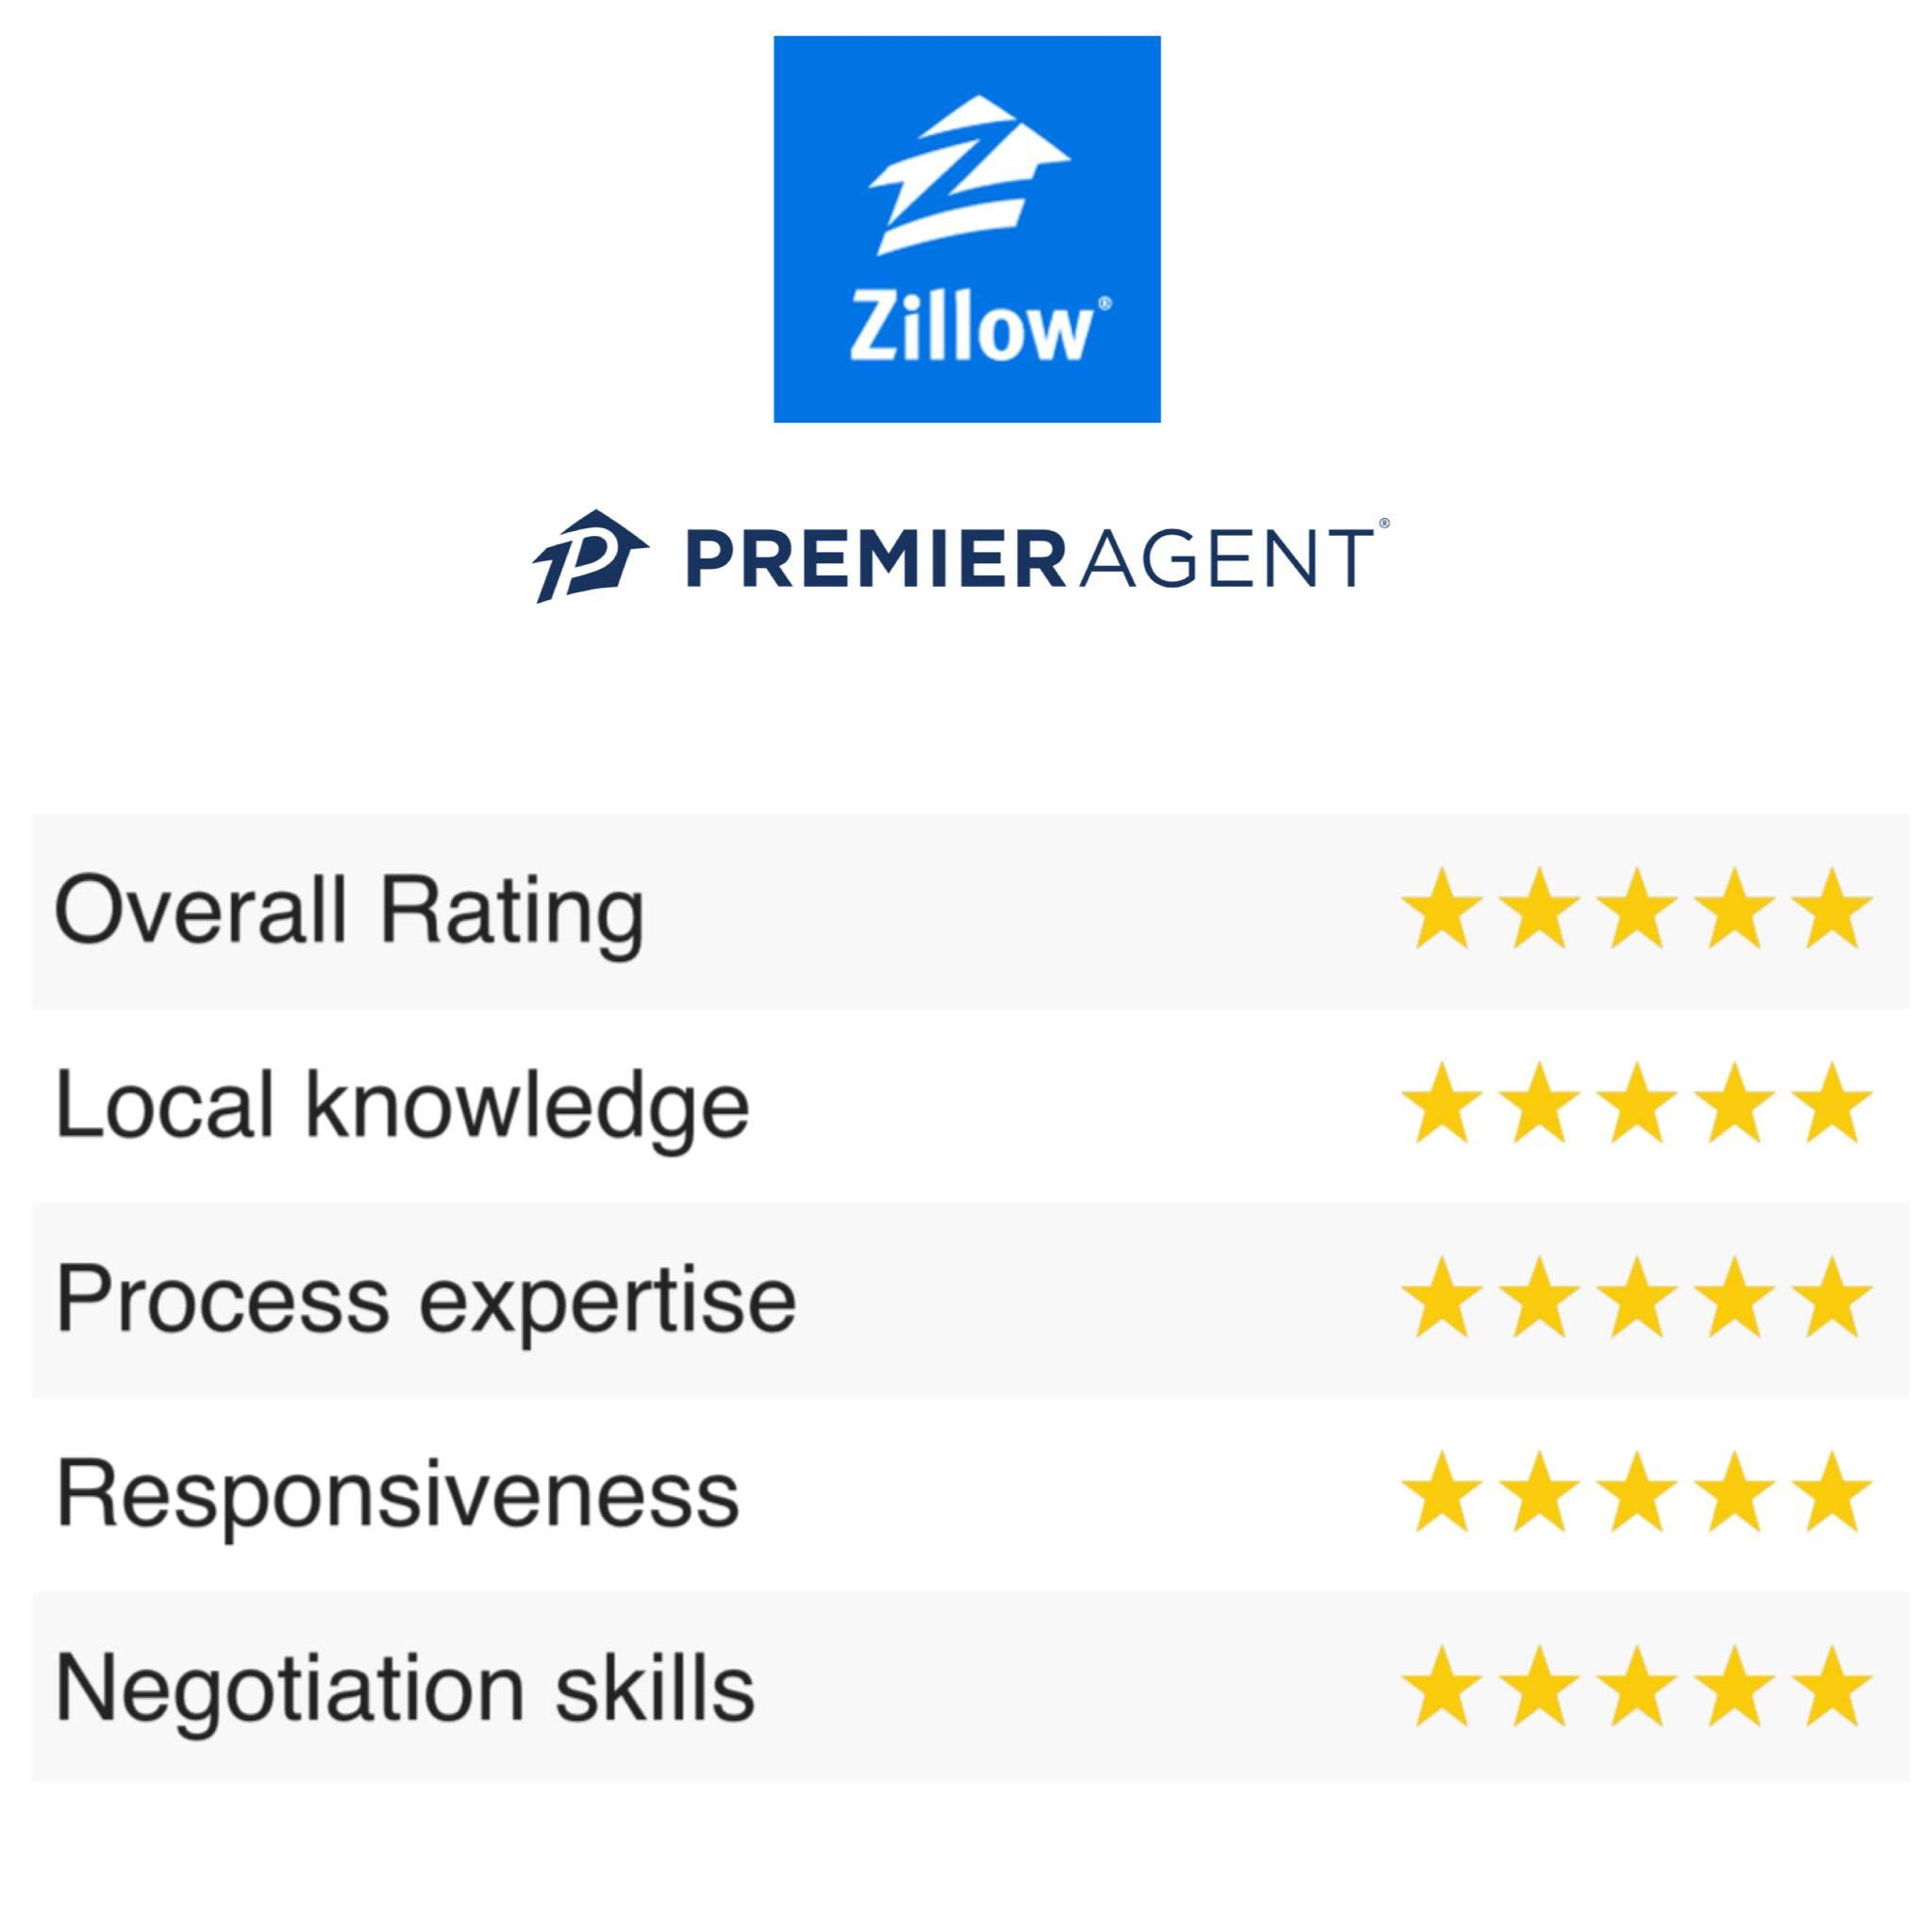 What people have been saying about us on Zillow